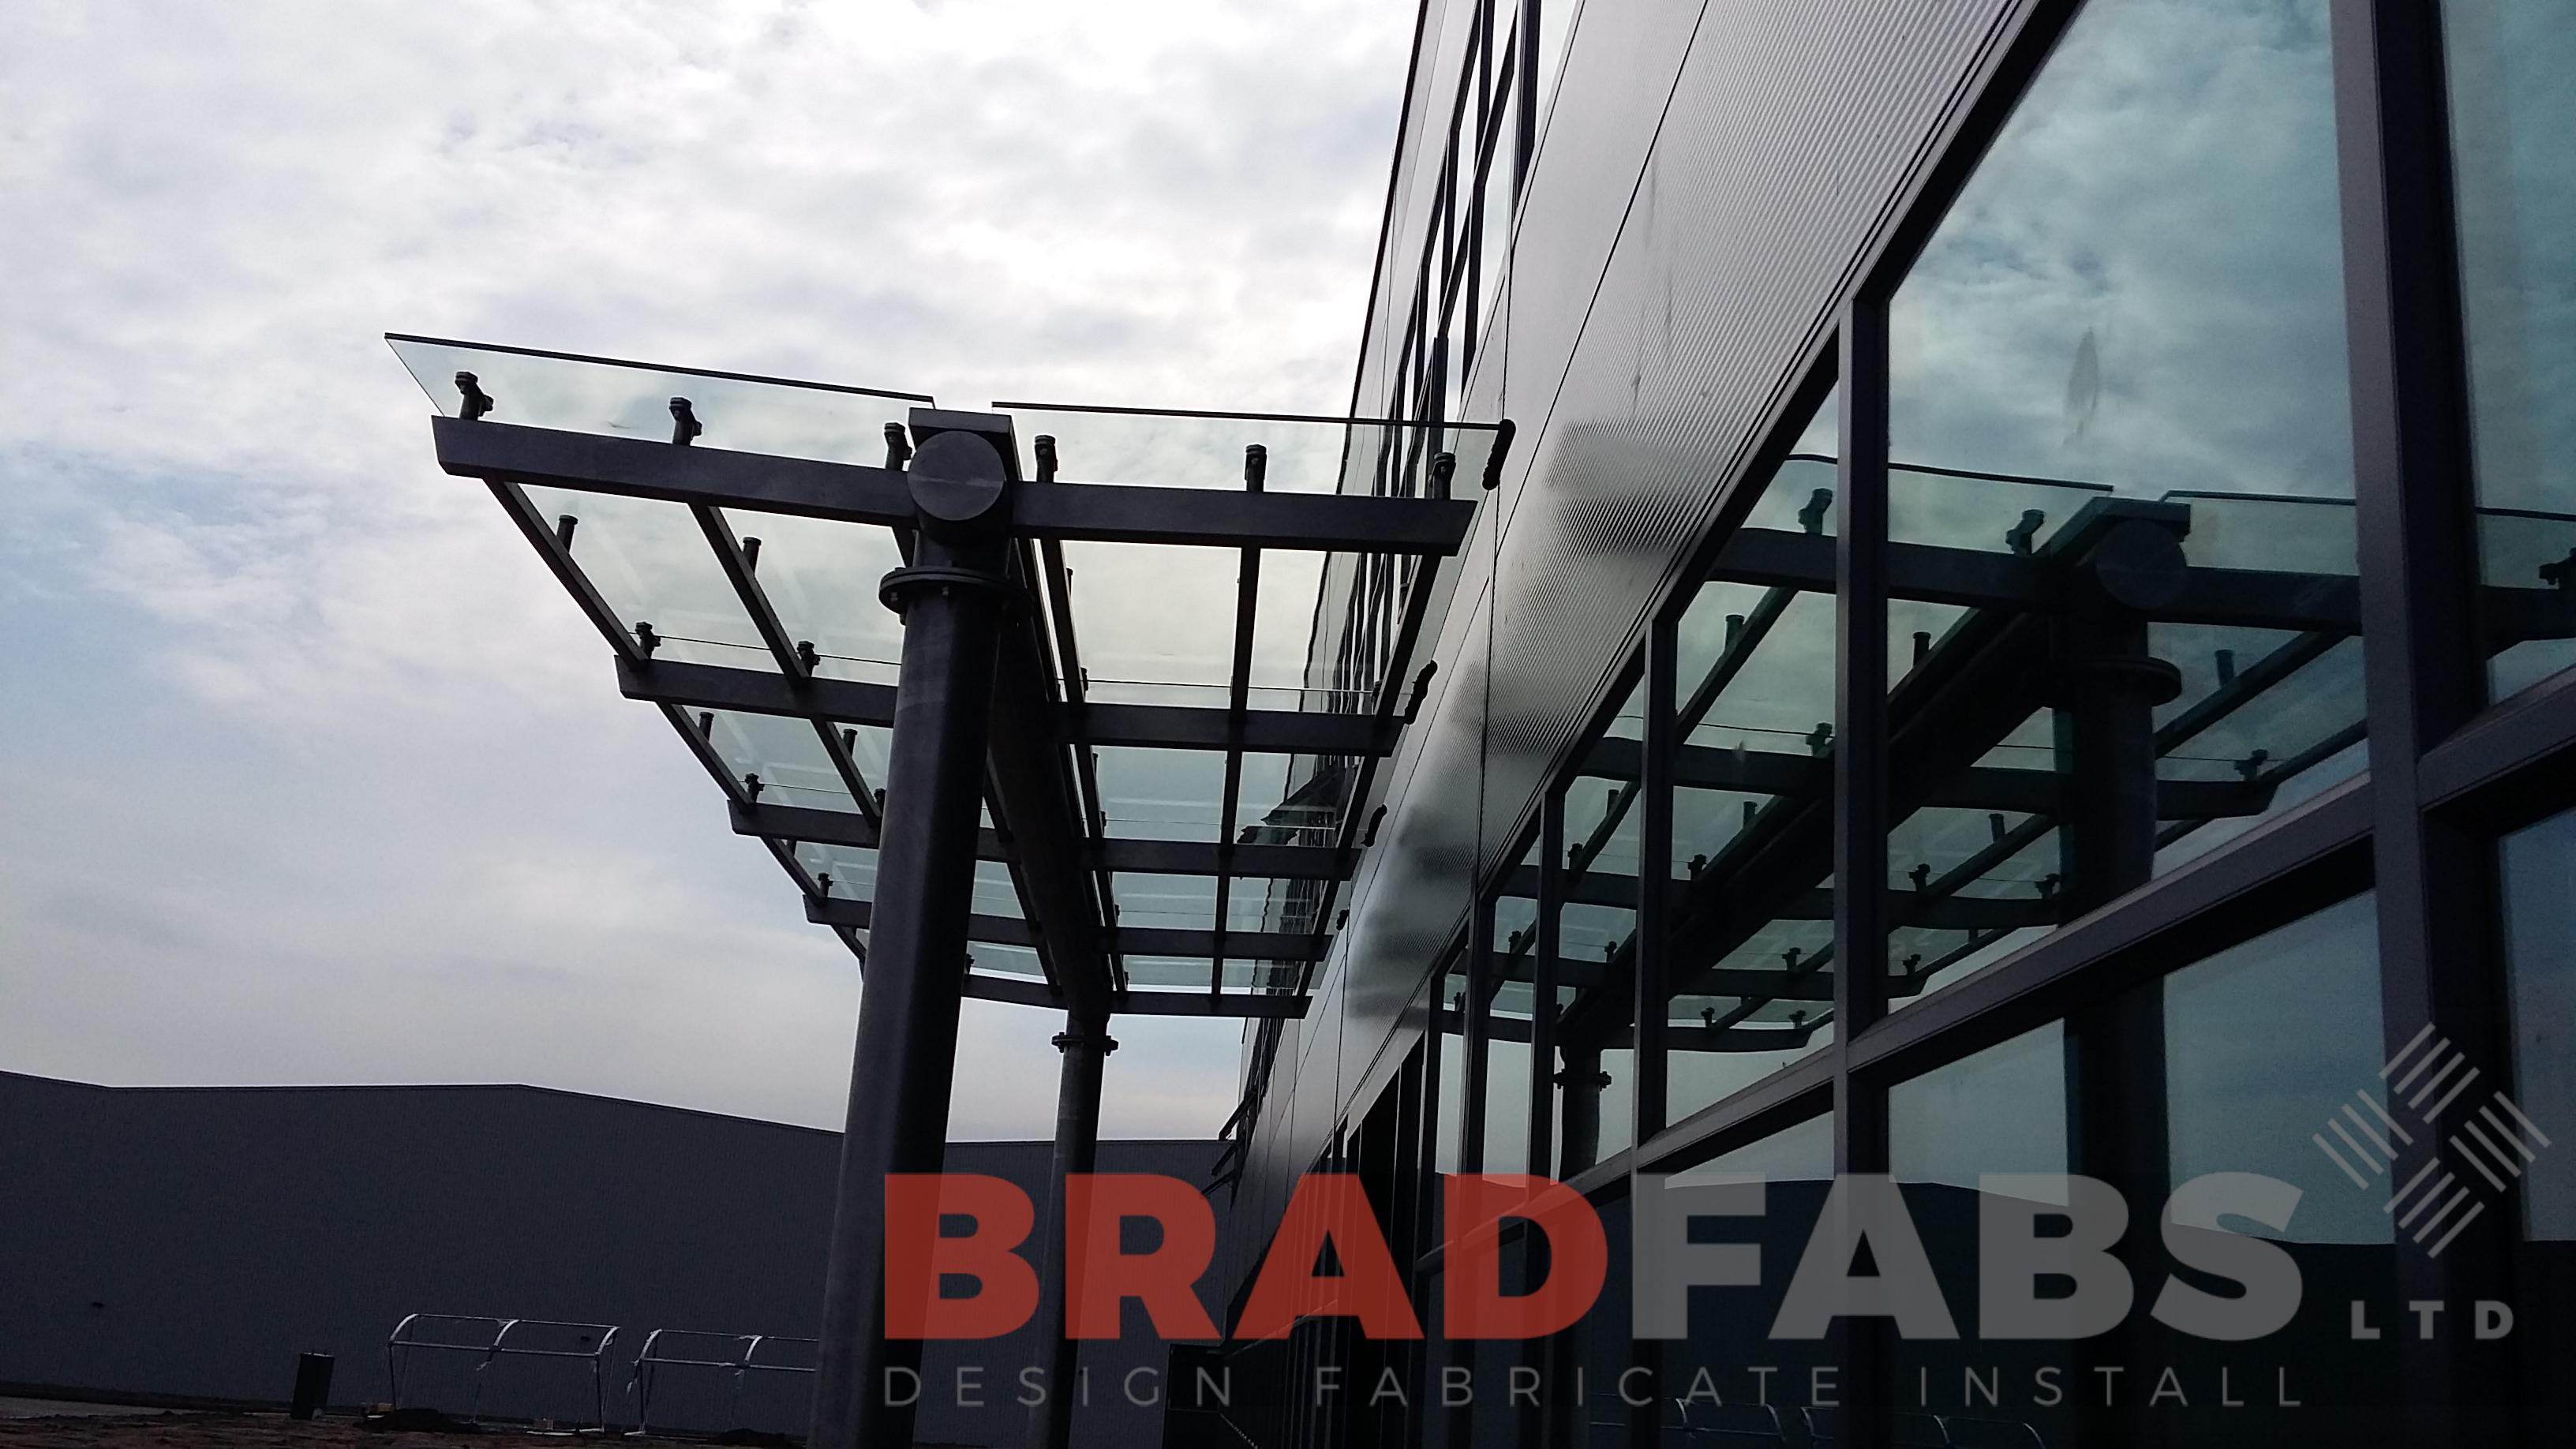 Large stainless steel and glass canopy designed and manufactured by Bradfabs